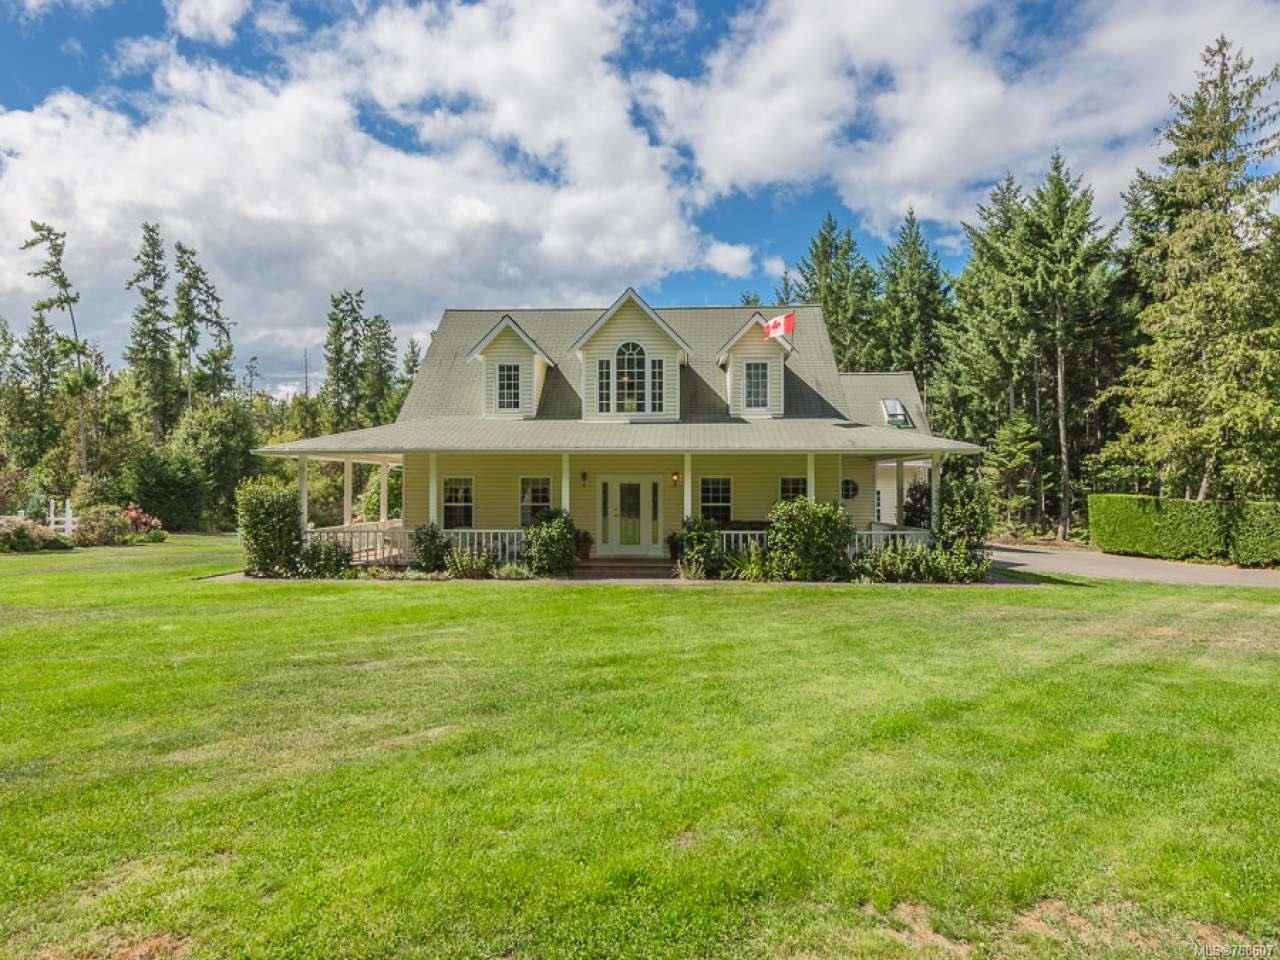 Main Photo: 1285 LEFFLER ROAD in ERRINGTON: PQ Errington/Coombs/Hilliers House for sale (Parksville/Qualicum)  : MLS®# 768607